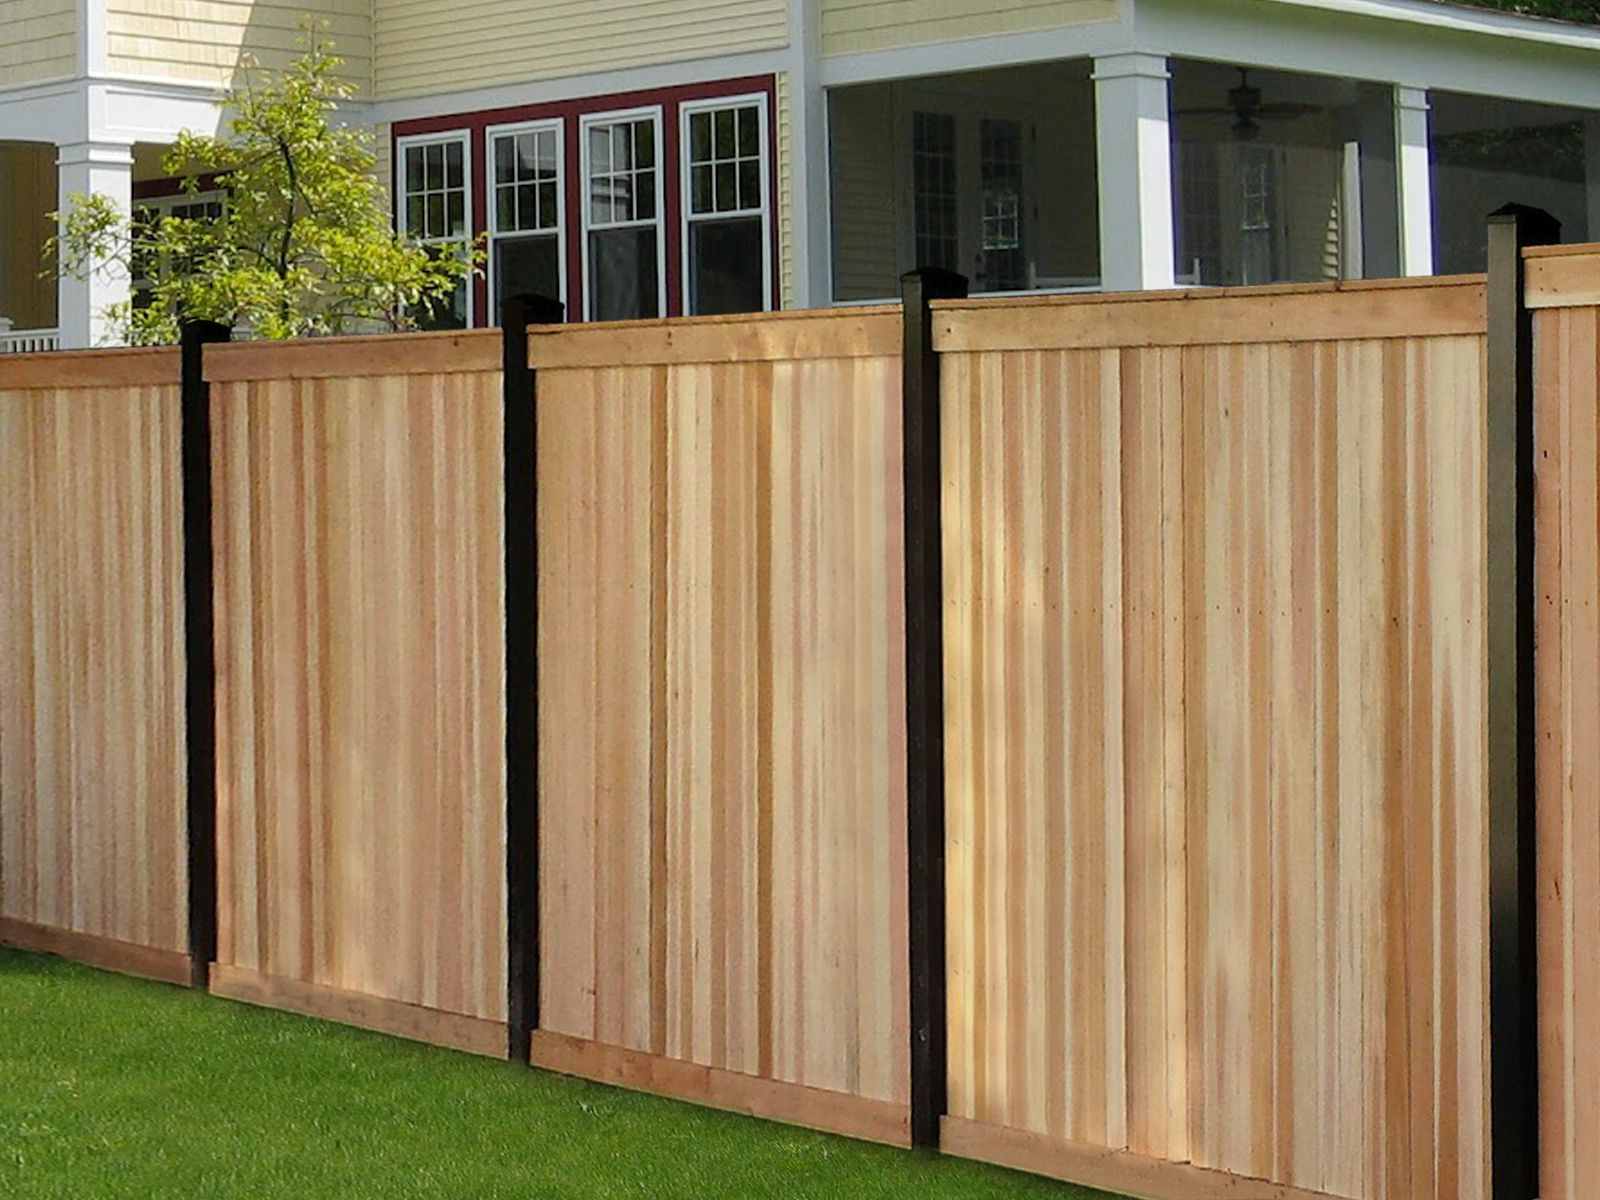 Black Painted Wood Fencing Google Search Wood Fence Design